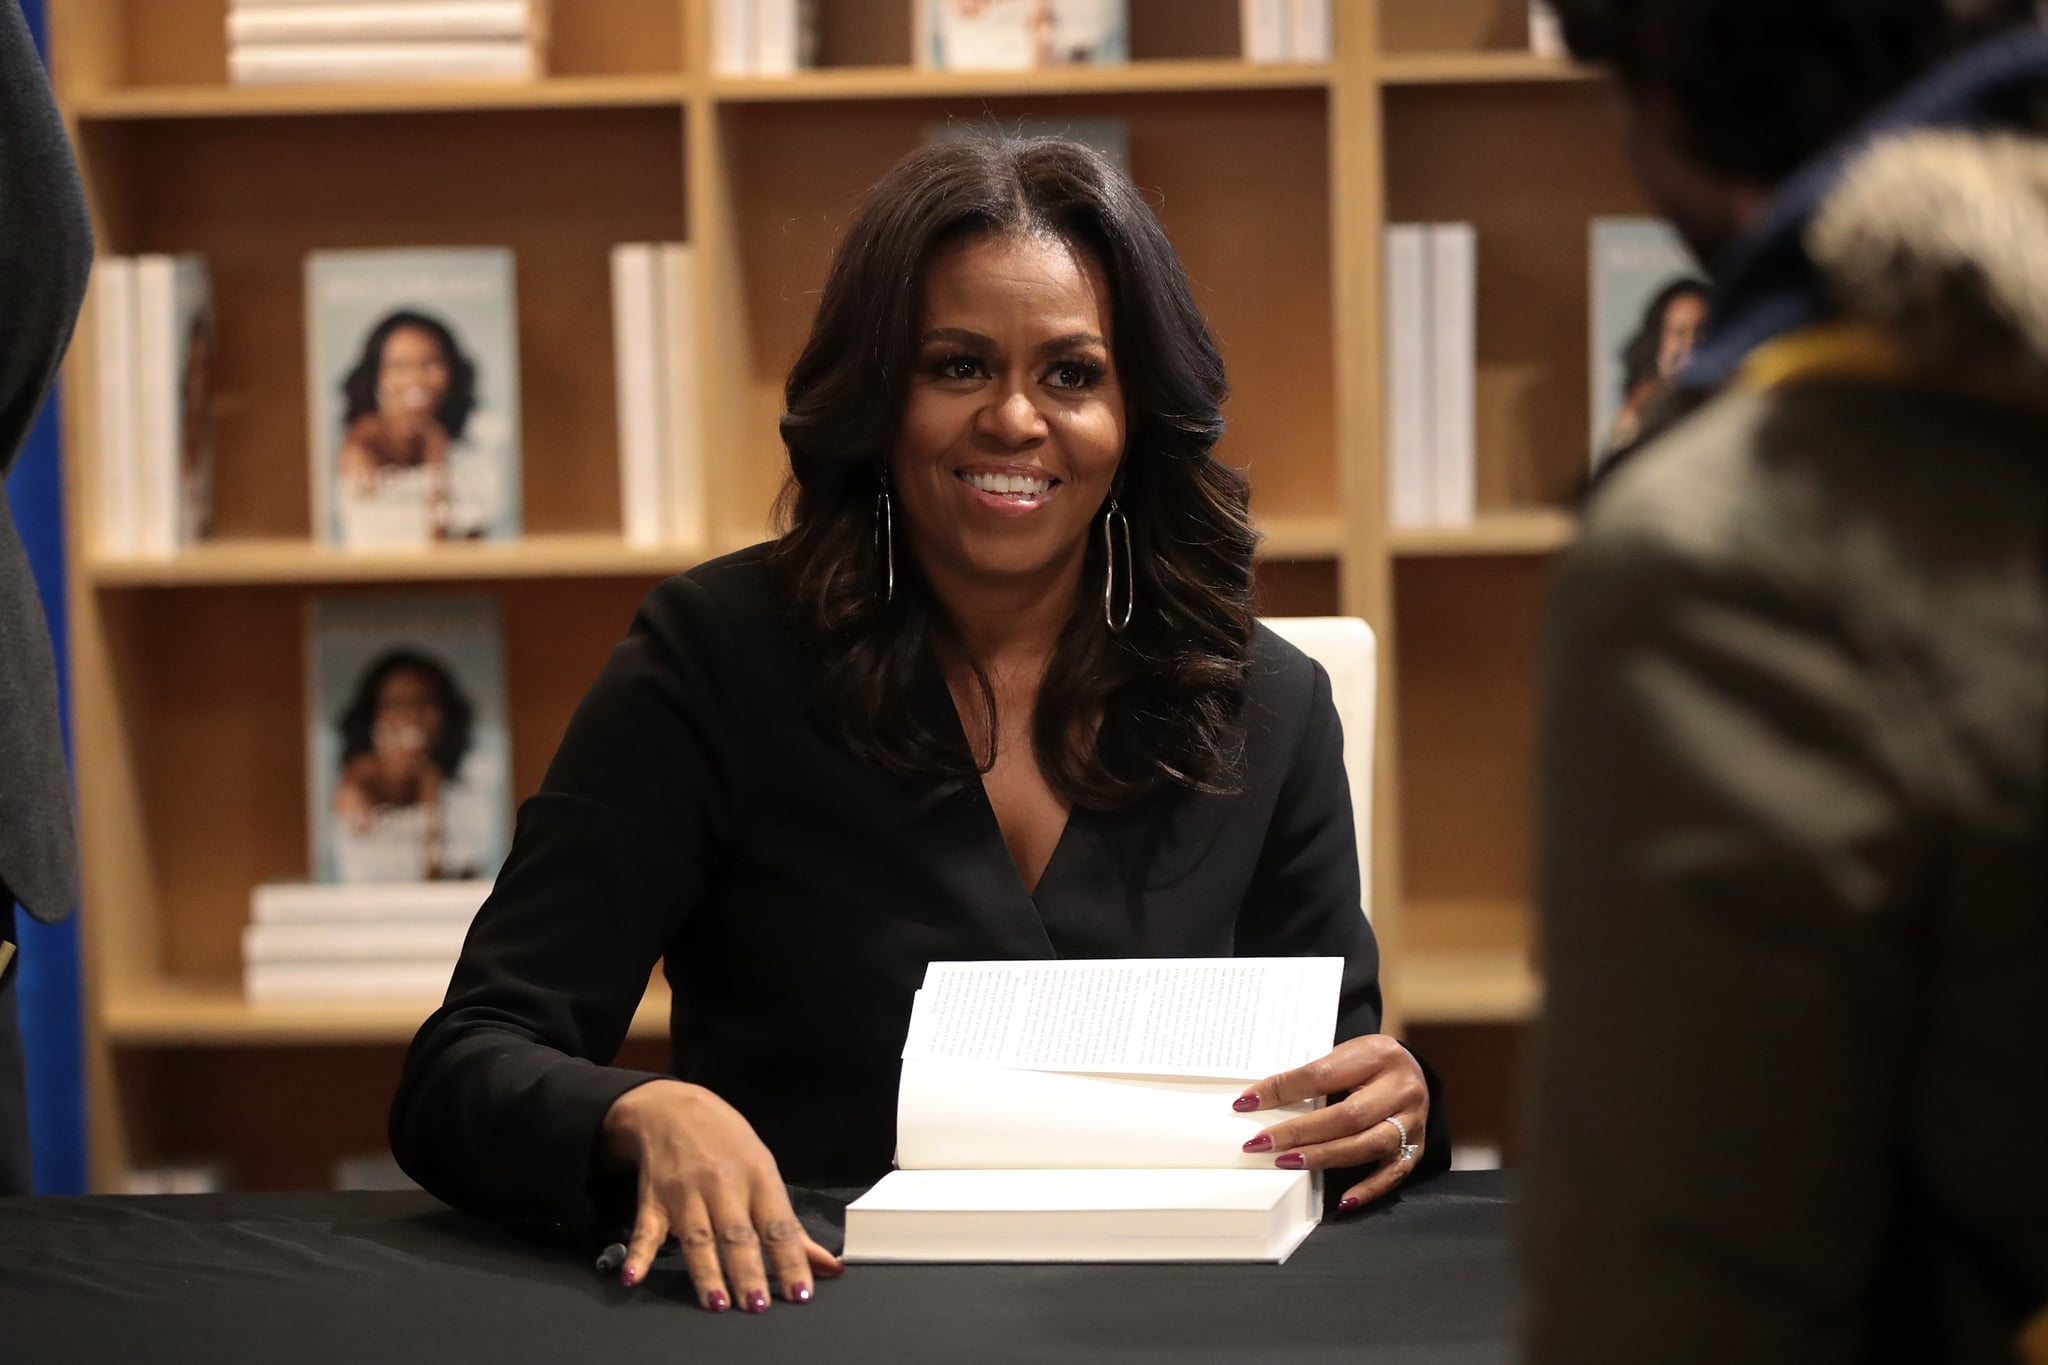 CHICAGO, IL - NOVEMBER 13:  Former first lady Michelle Obama kicks off her ?Becoming? book tour with a signing at the Seminary Co-op bookstore on November 13, 2018 in Chicago, Illinois. In the book, which was released today, Obama describes her journey from Chicago's South Side to the White House.  (Photo by Scott Olson/Getty Images)